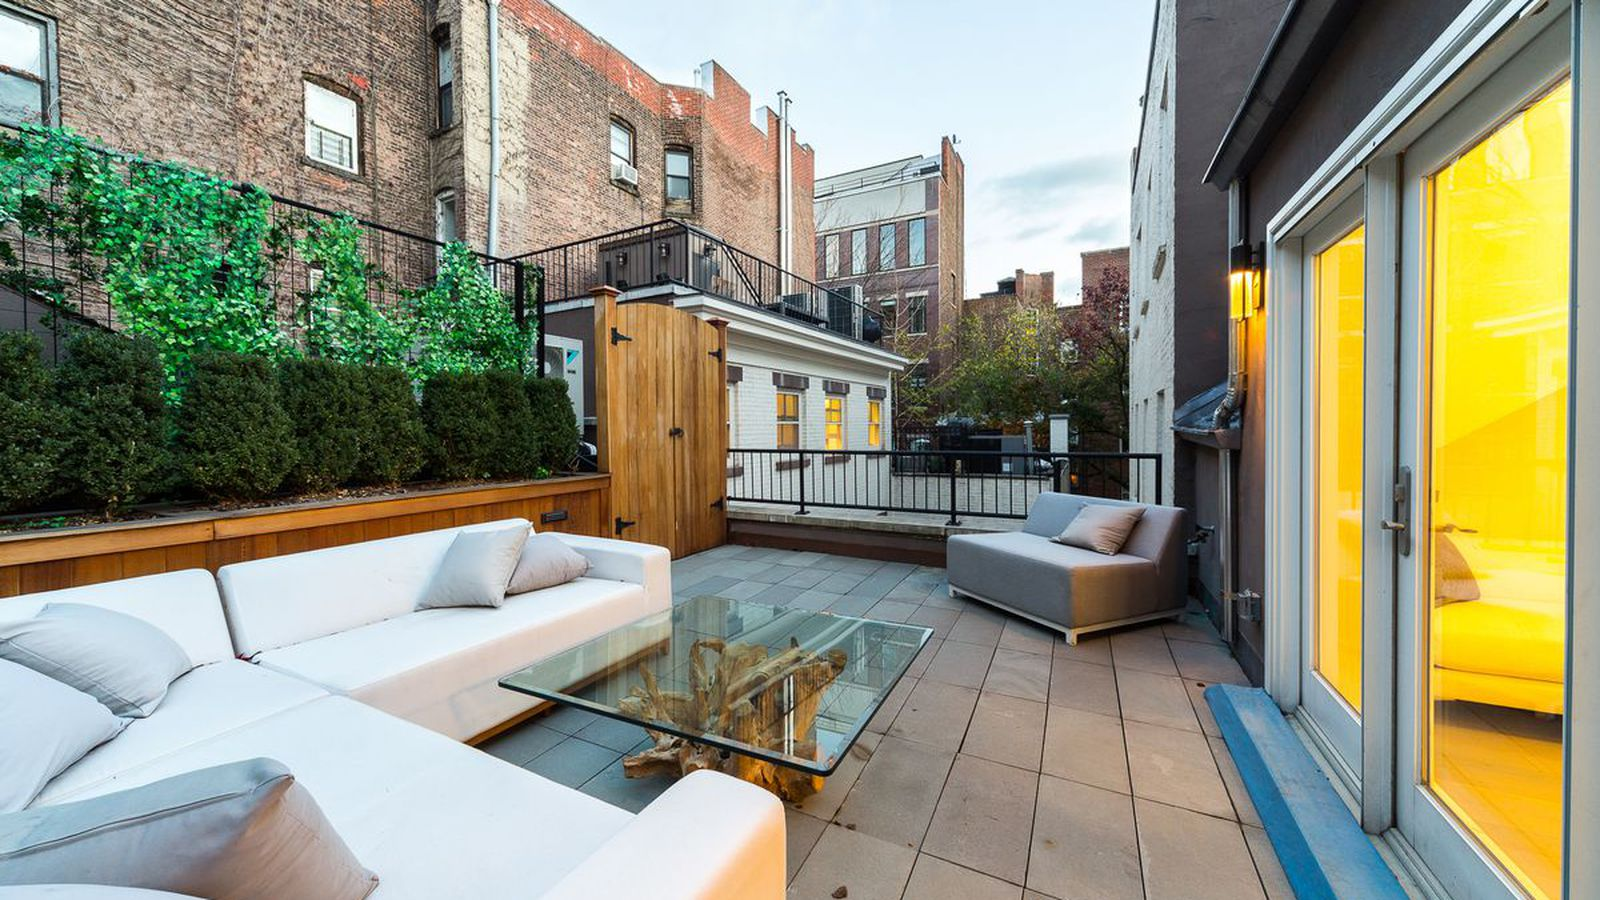 How to create an outdoor oasis in a small nyc apartment curbed ny - How to create a small outdoor oasis ...